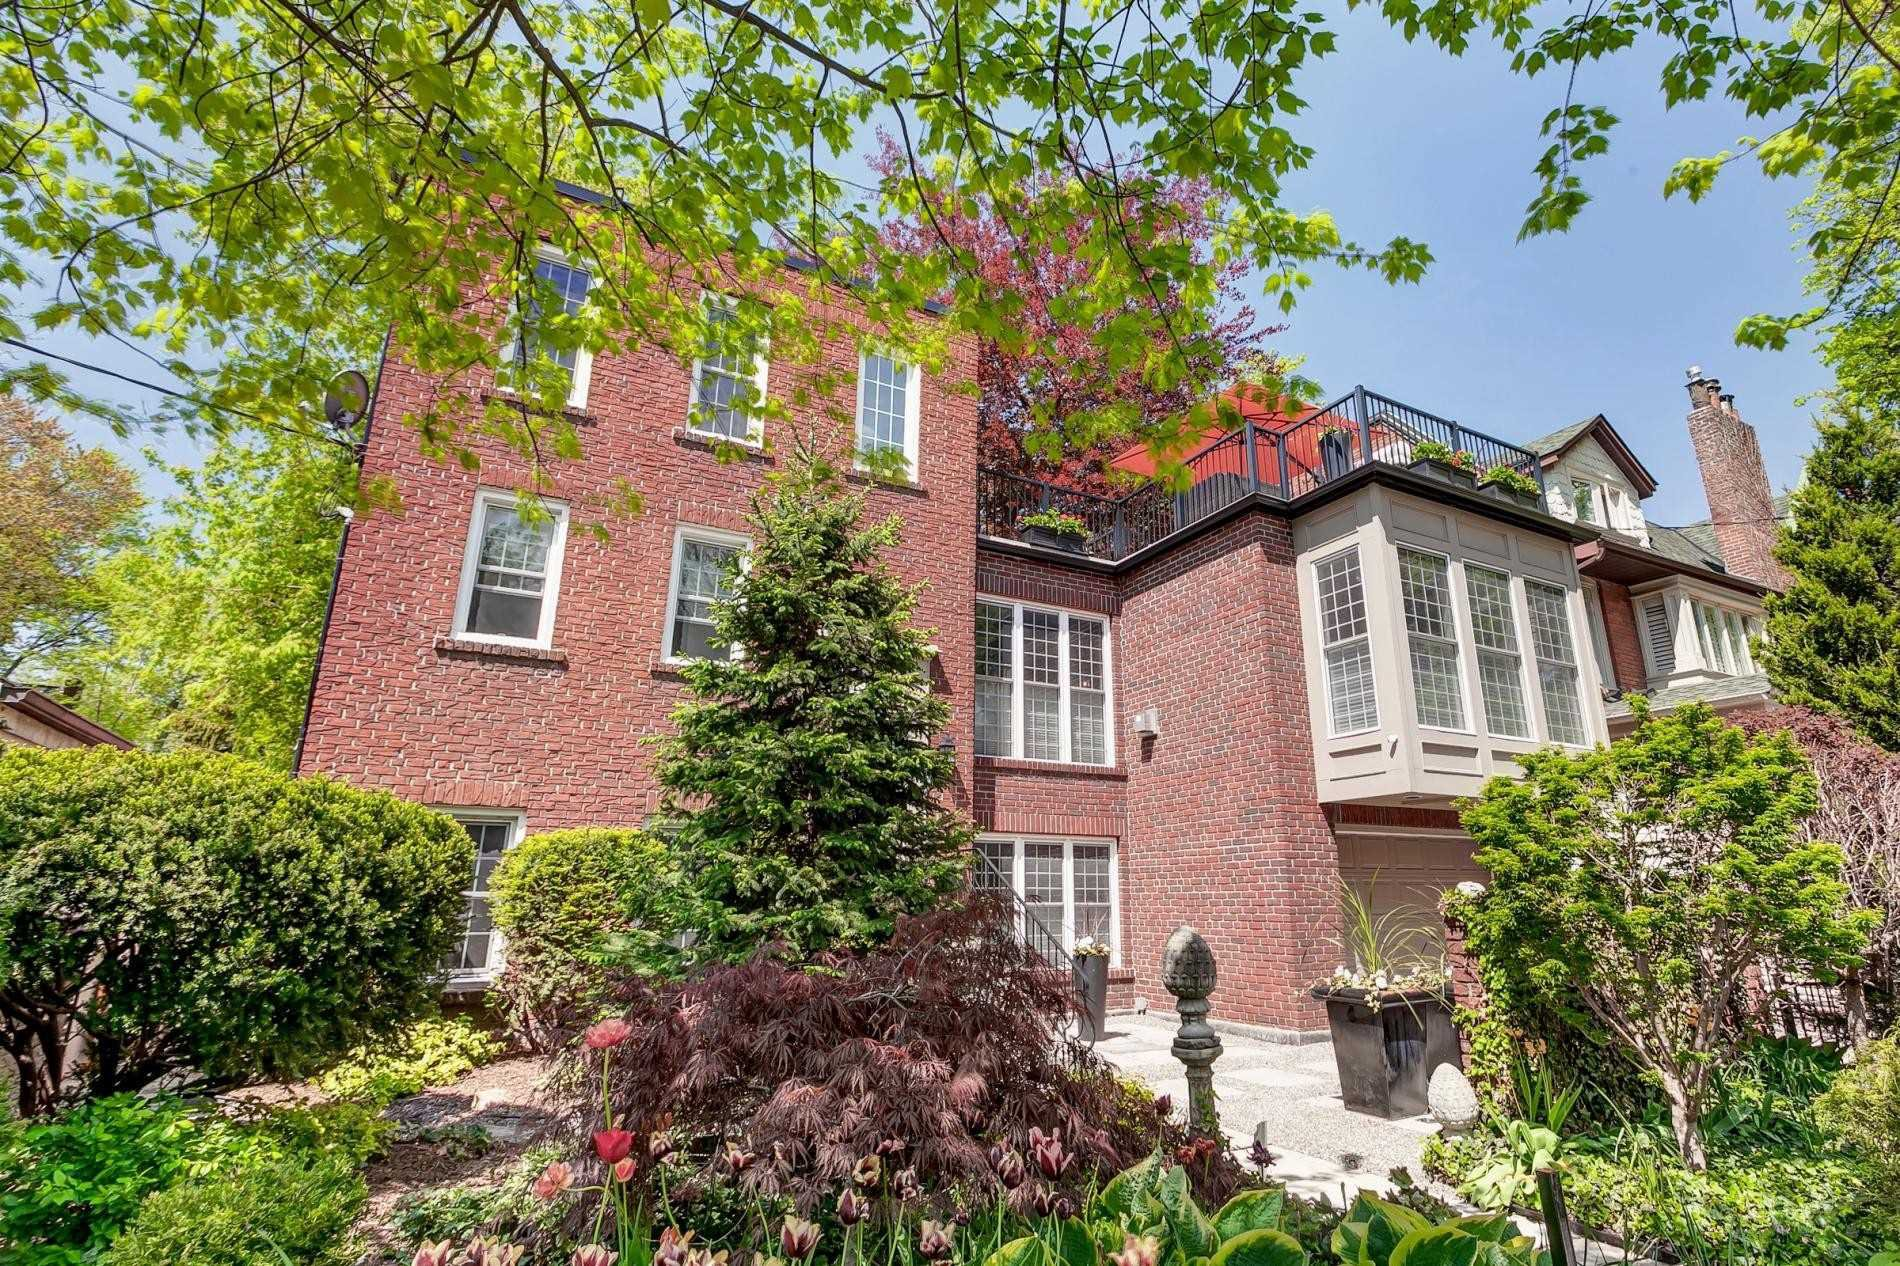 Main Photo: 18 Nanton Avenue in Toronto: Rosedale-Moore Park House (3-Storey) for sale (Toronto C09)  : MLS®# C4564669